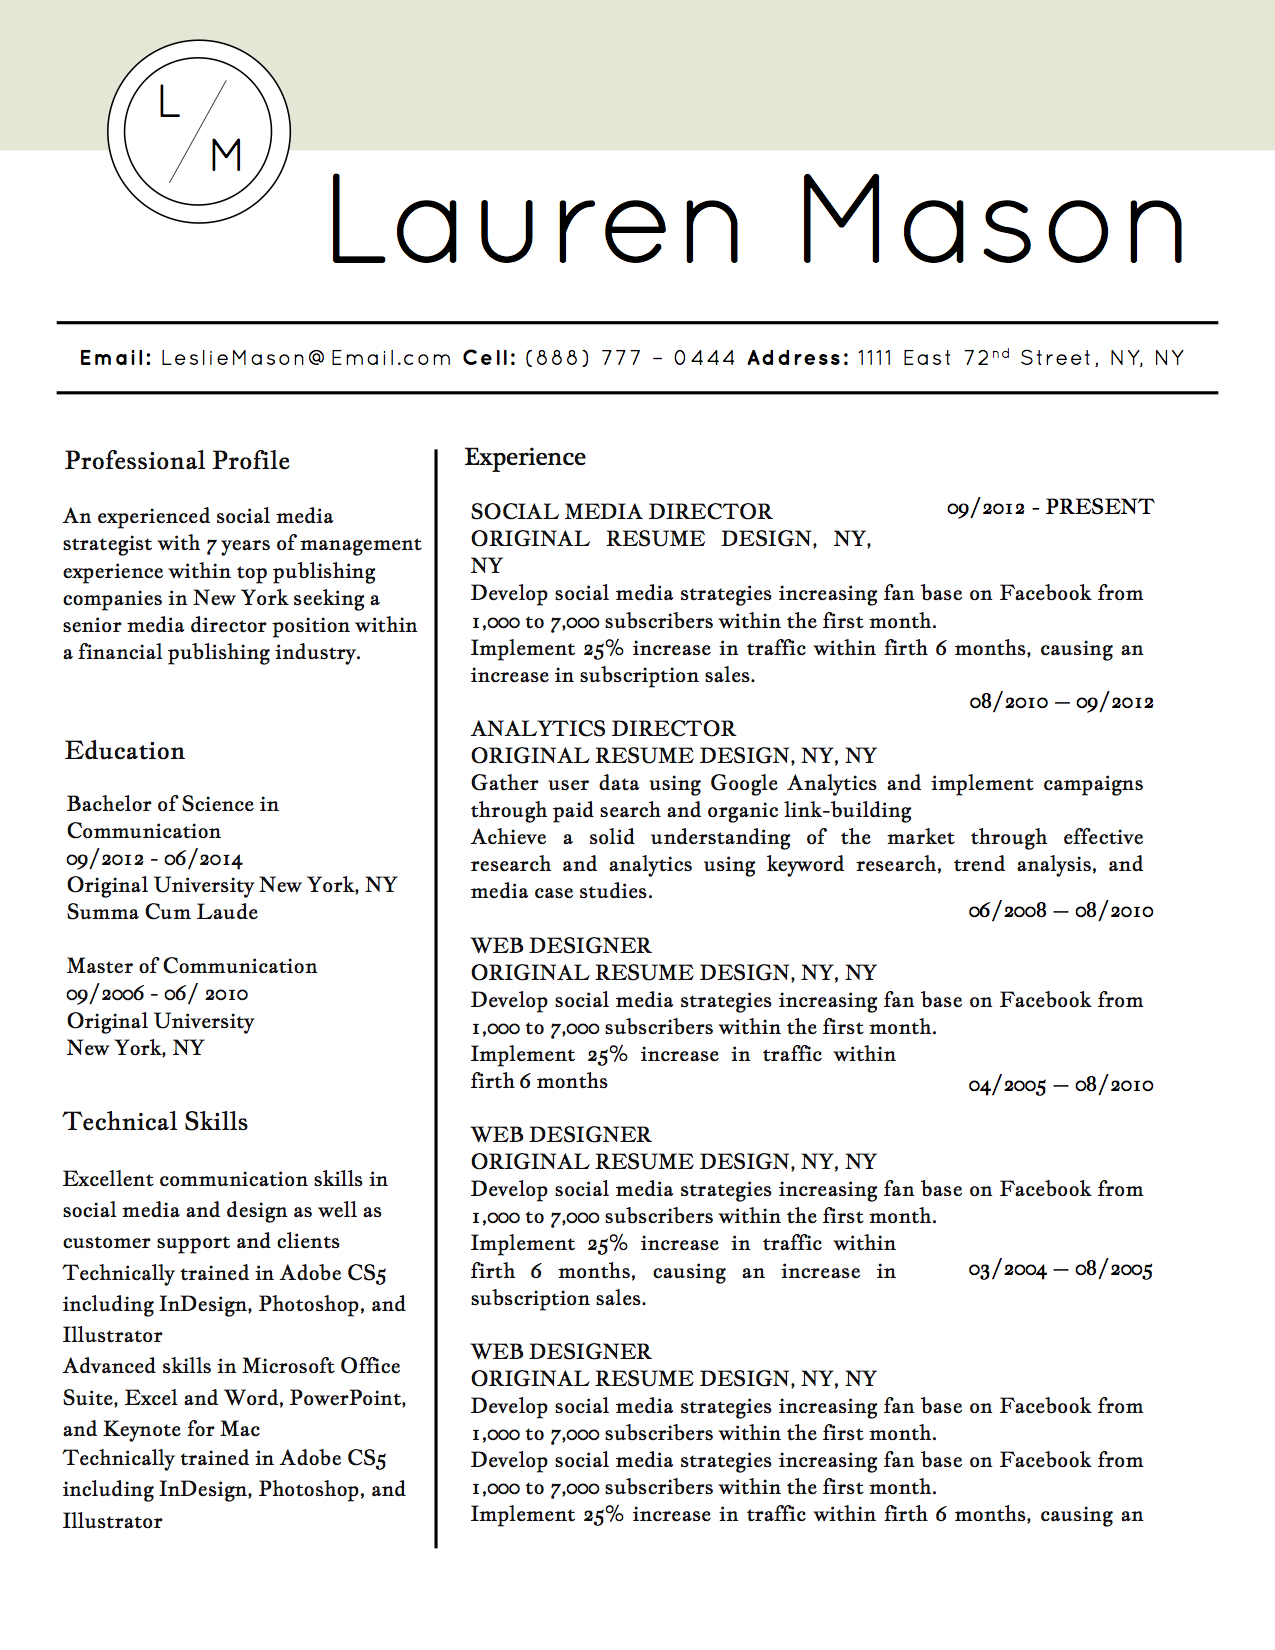 Lauren mason resume template stand out shop for Standout cover letter examples